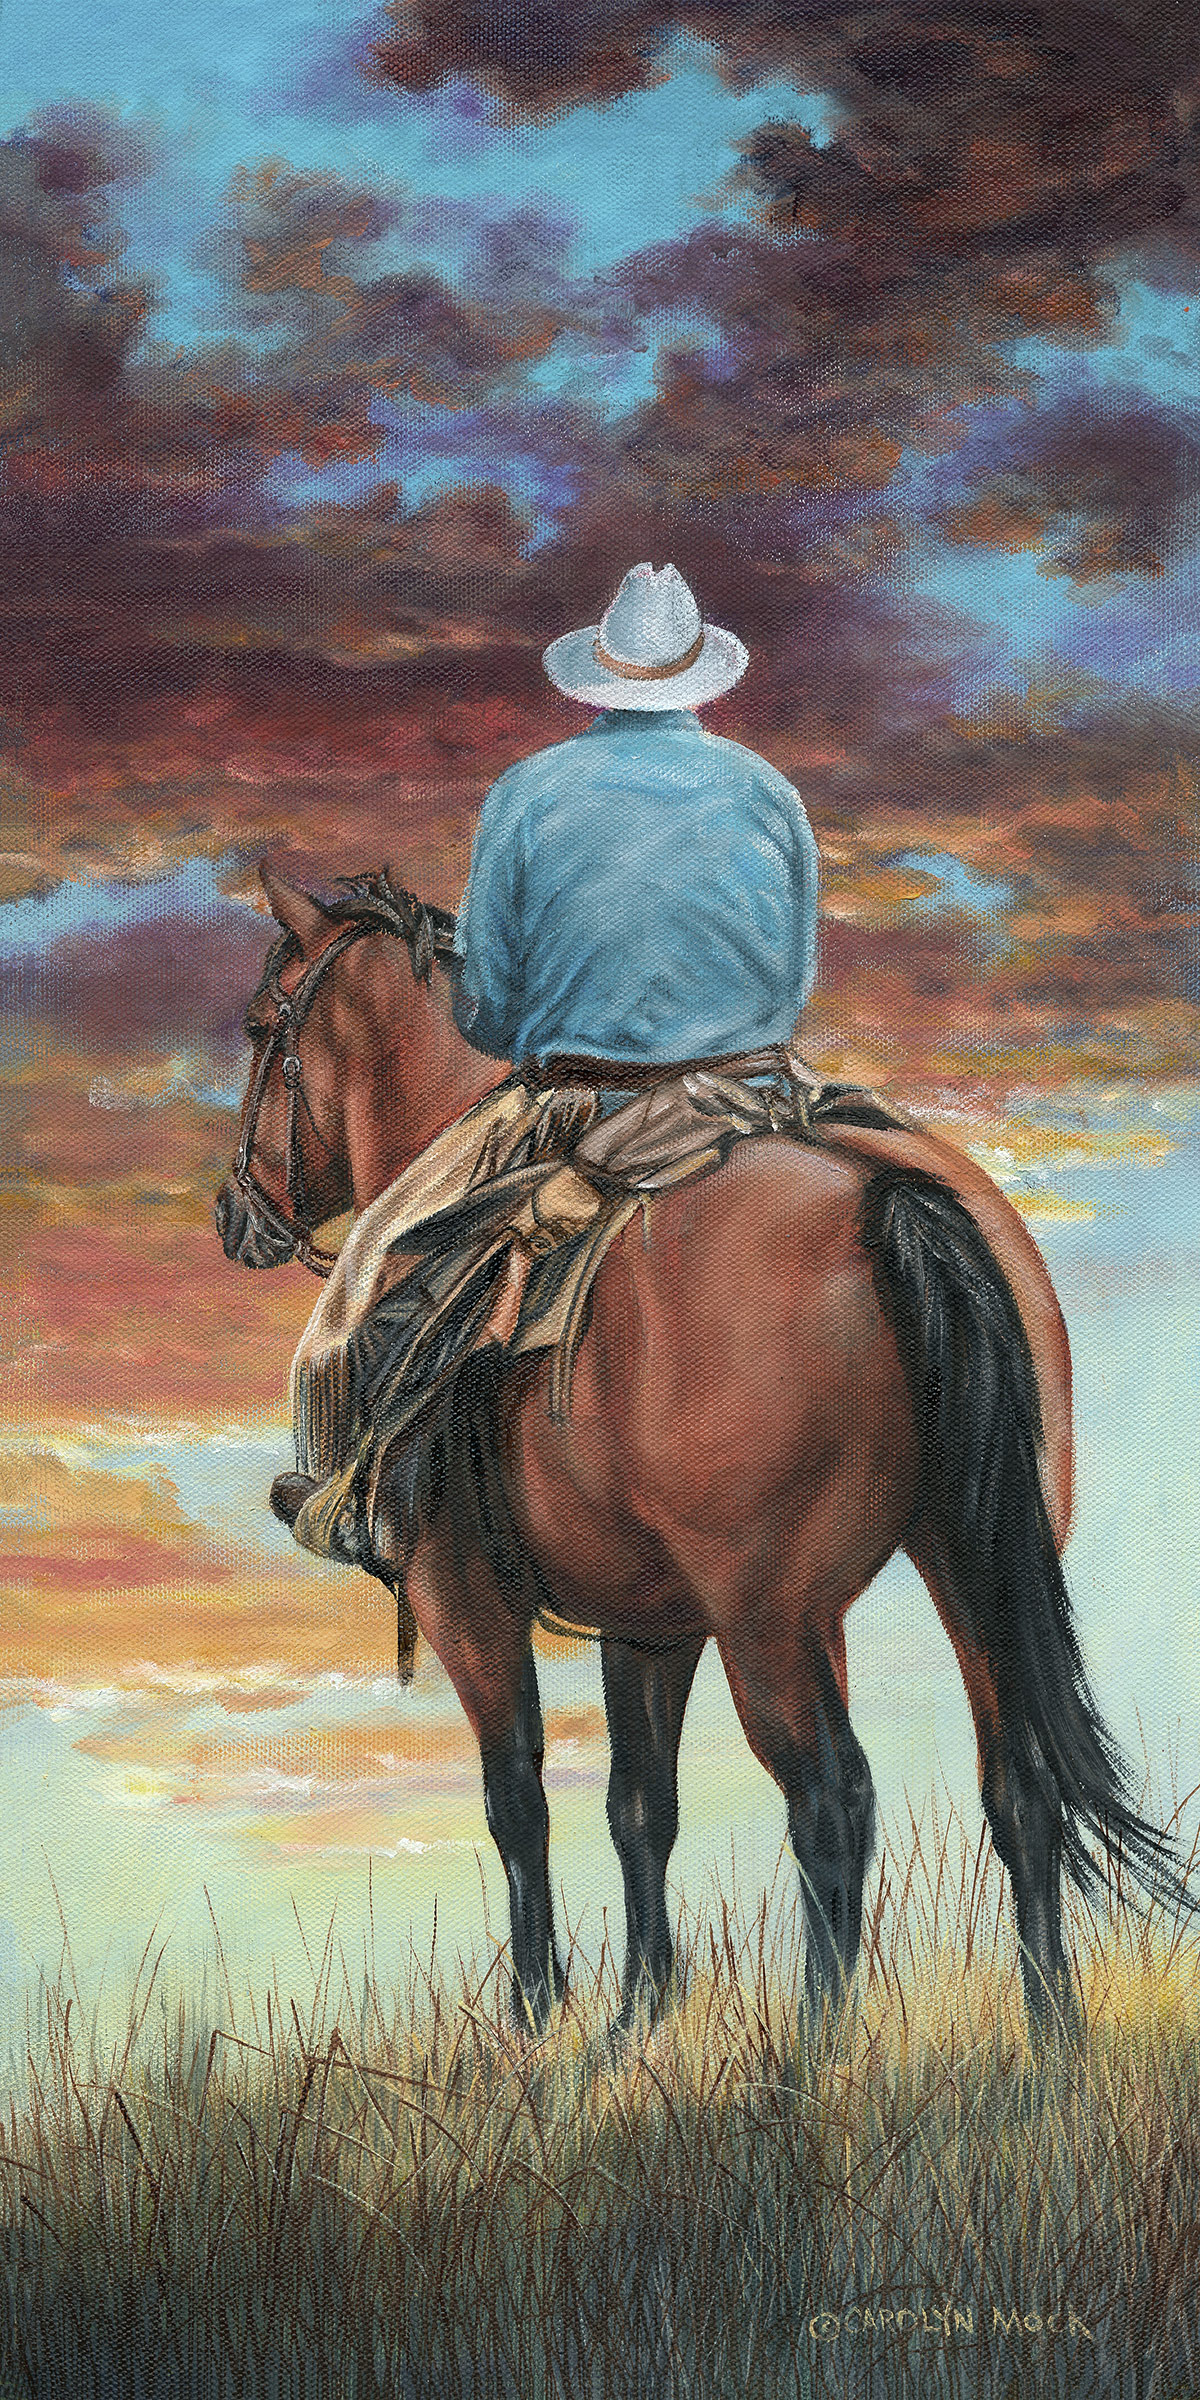 A cowboy rides into the sunset